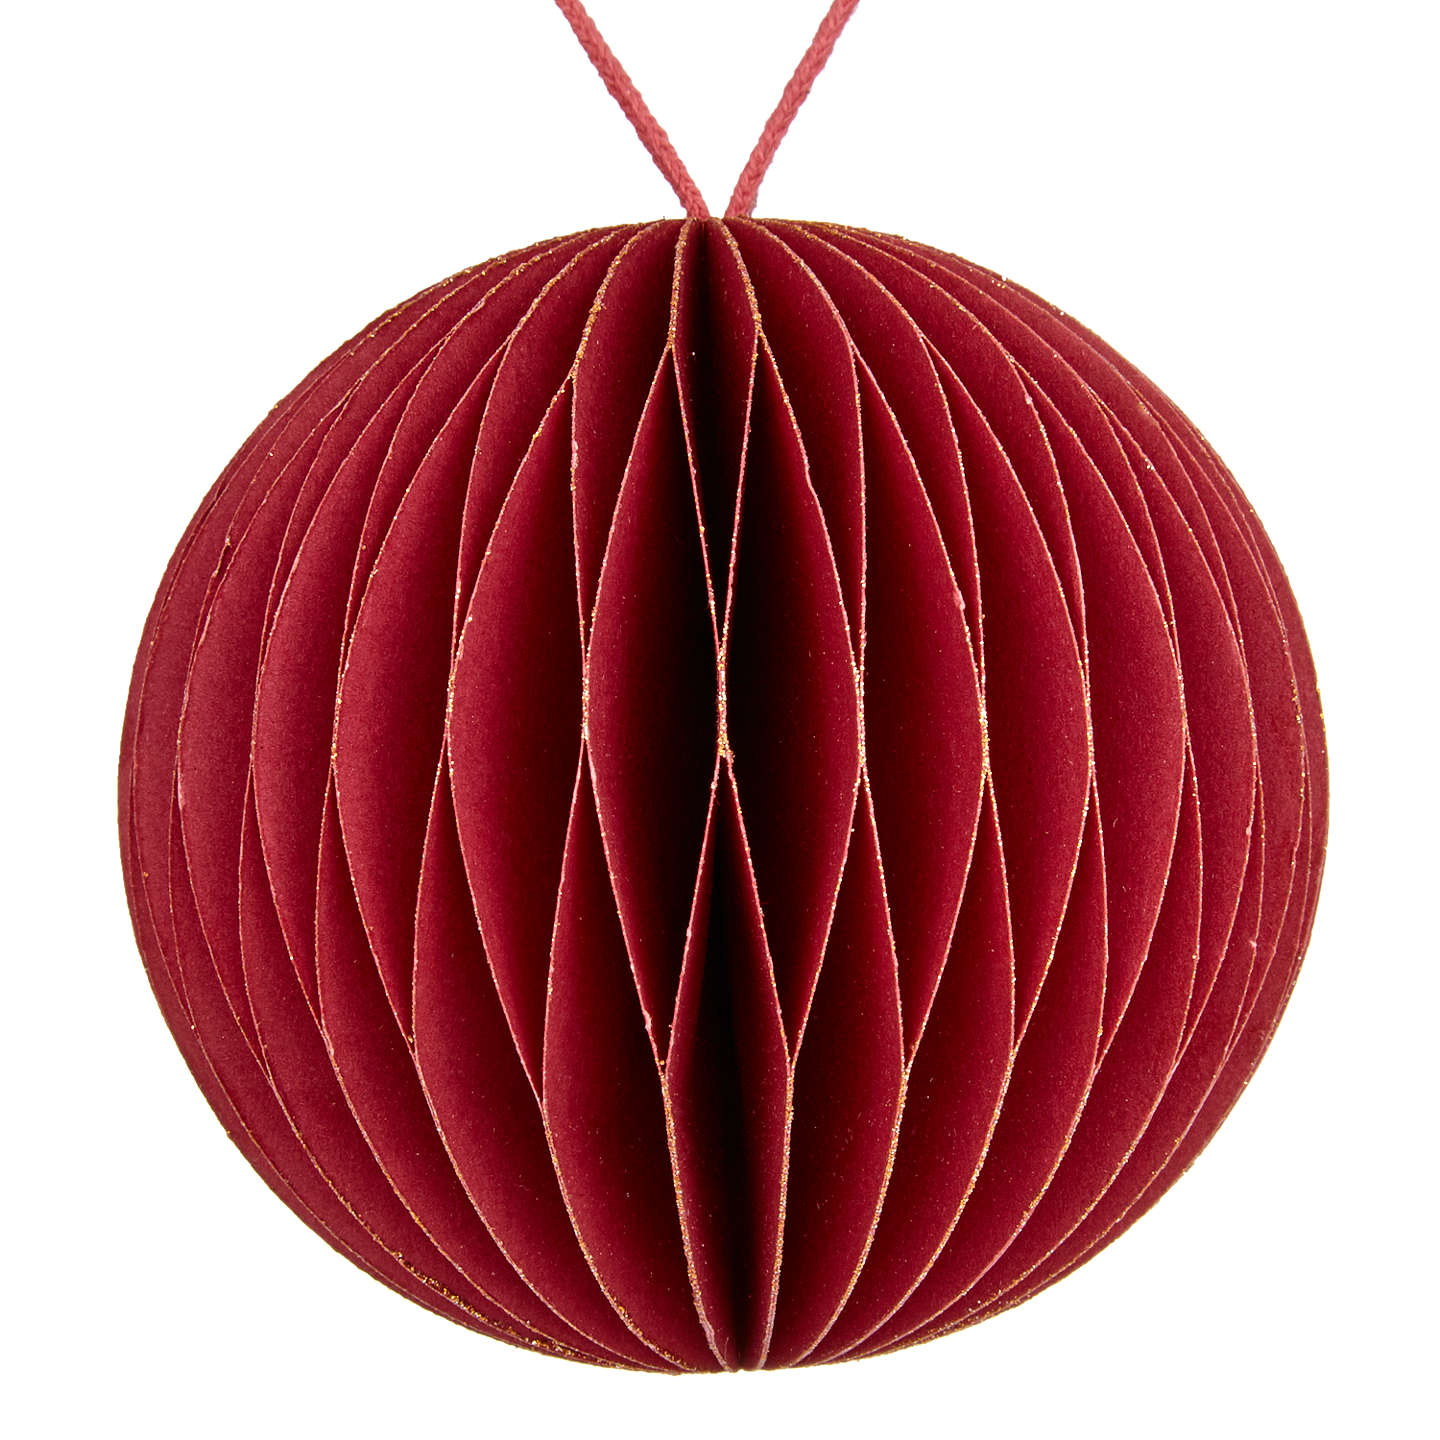 Buyvivid Highland Myths Honeycomb Paper Bauble, Red Online At Johnlewiscom